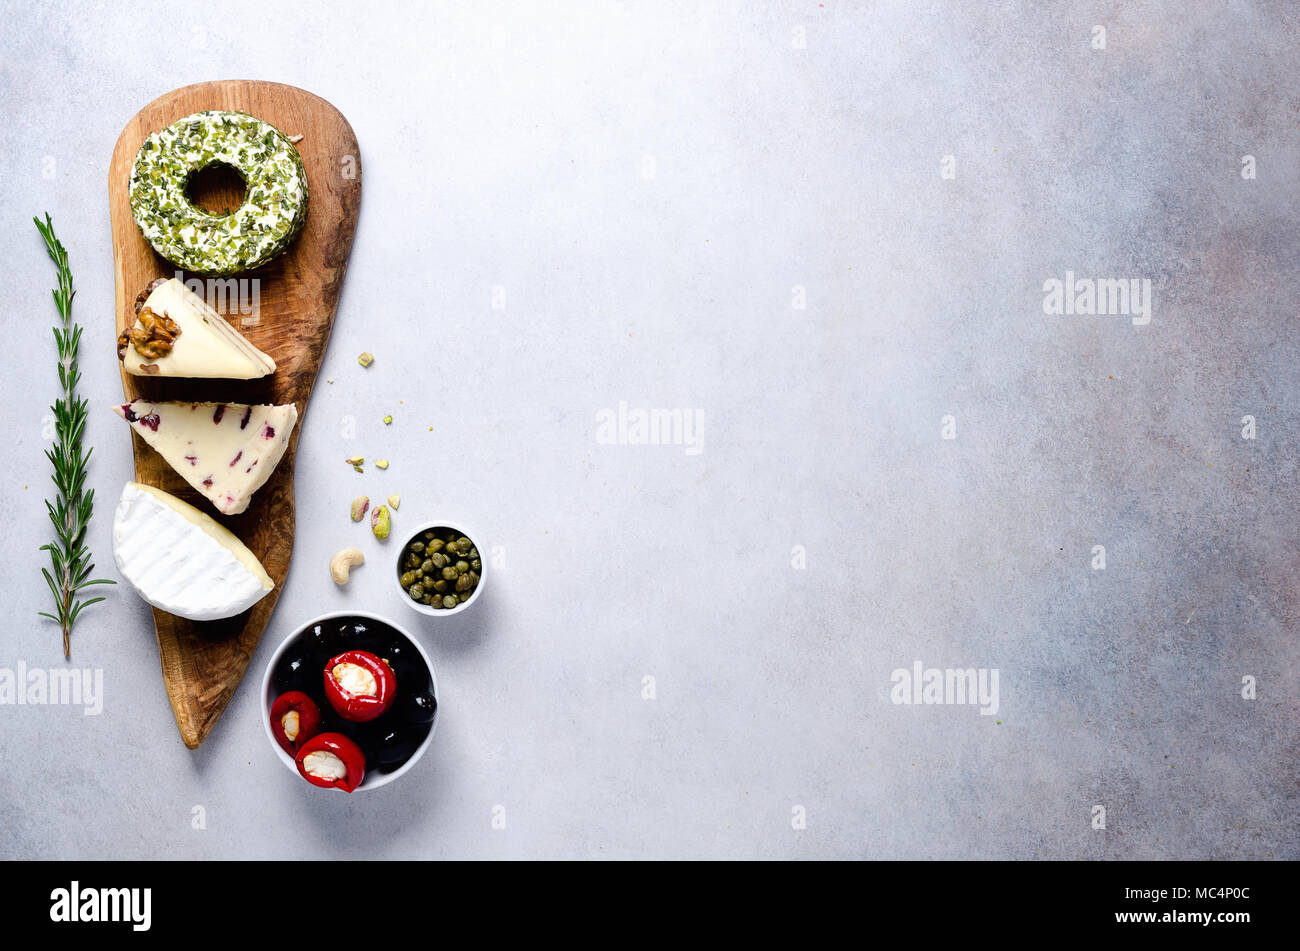 Assortment of hard, semi-soft and soft cheeses with olives, grissini bread sticks, capers, grape, on grey concrete backgound. Top view, copy space, flat lay. Cheese selection appetizer plate. - Stock Image